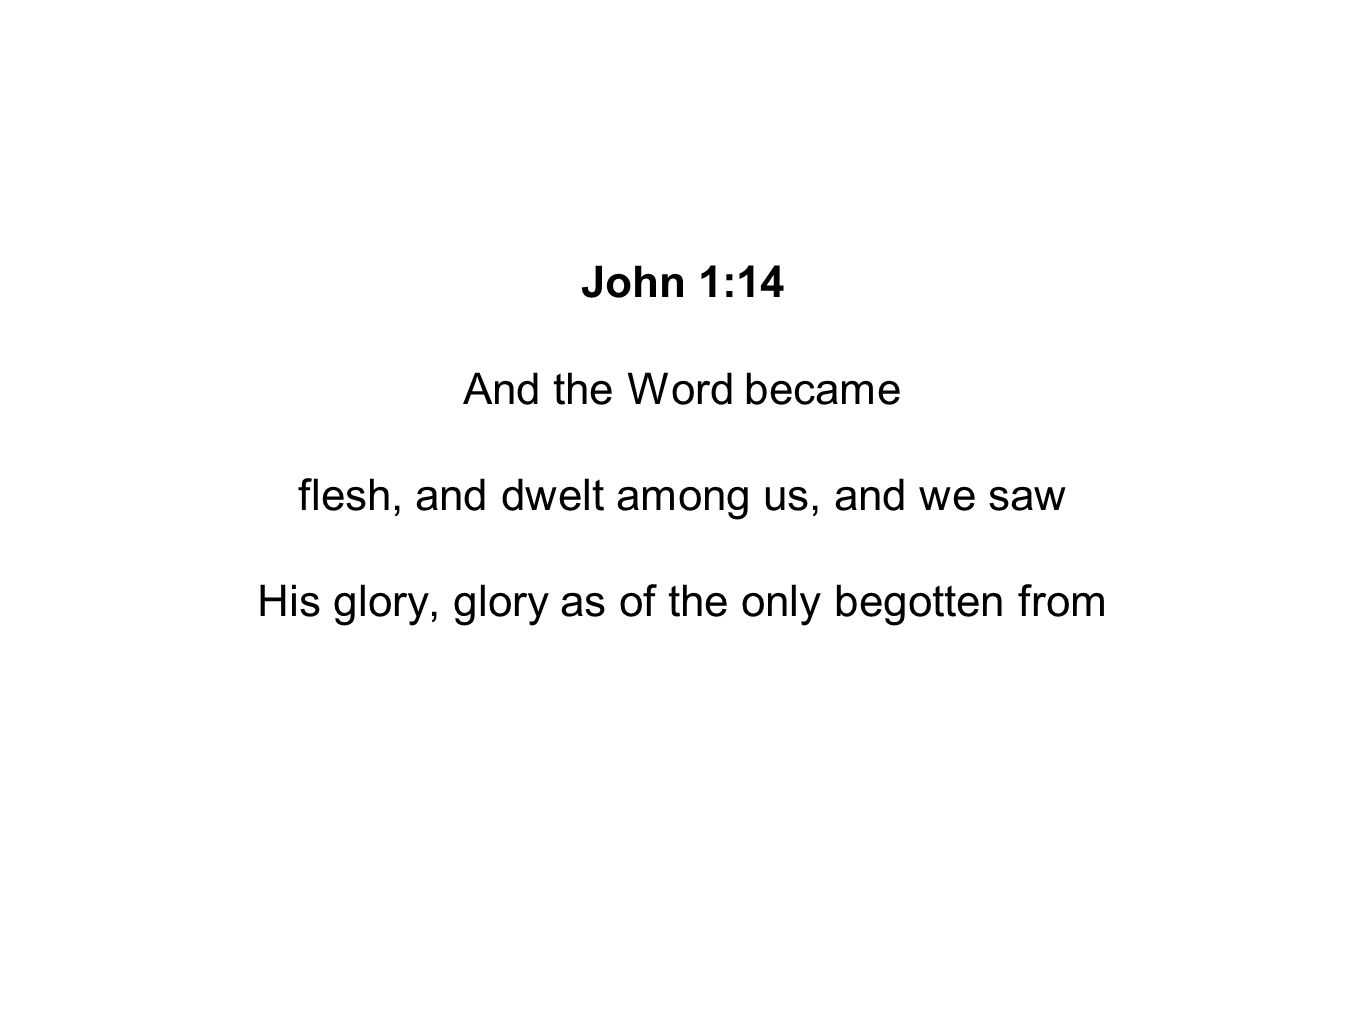 John 1:14 And the Word became flesh, and dwelt among us, and we saw His glory, glory as of the only begotten from